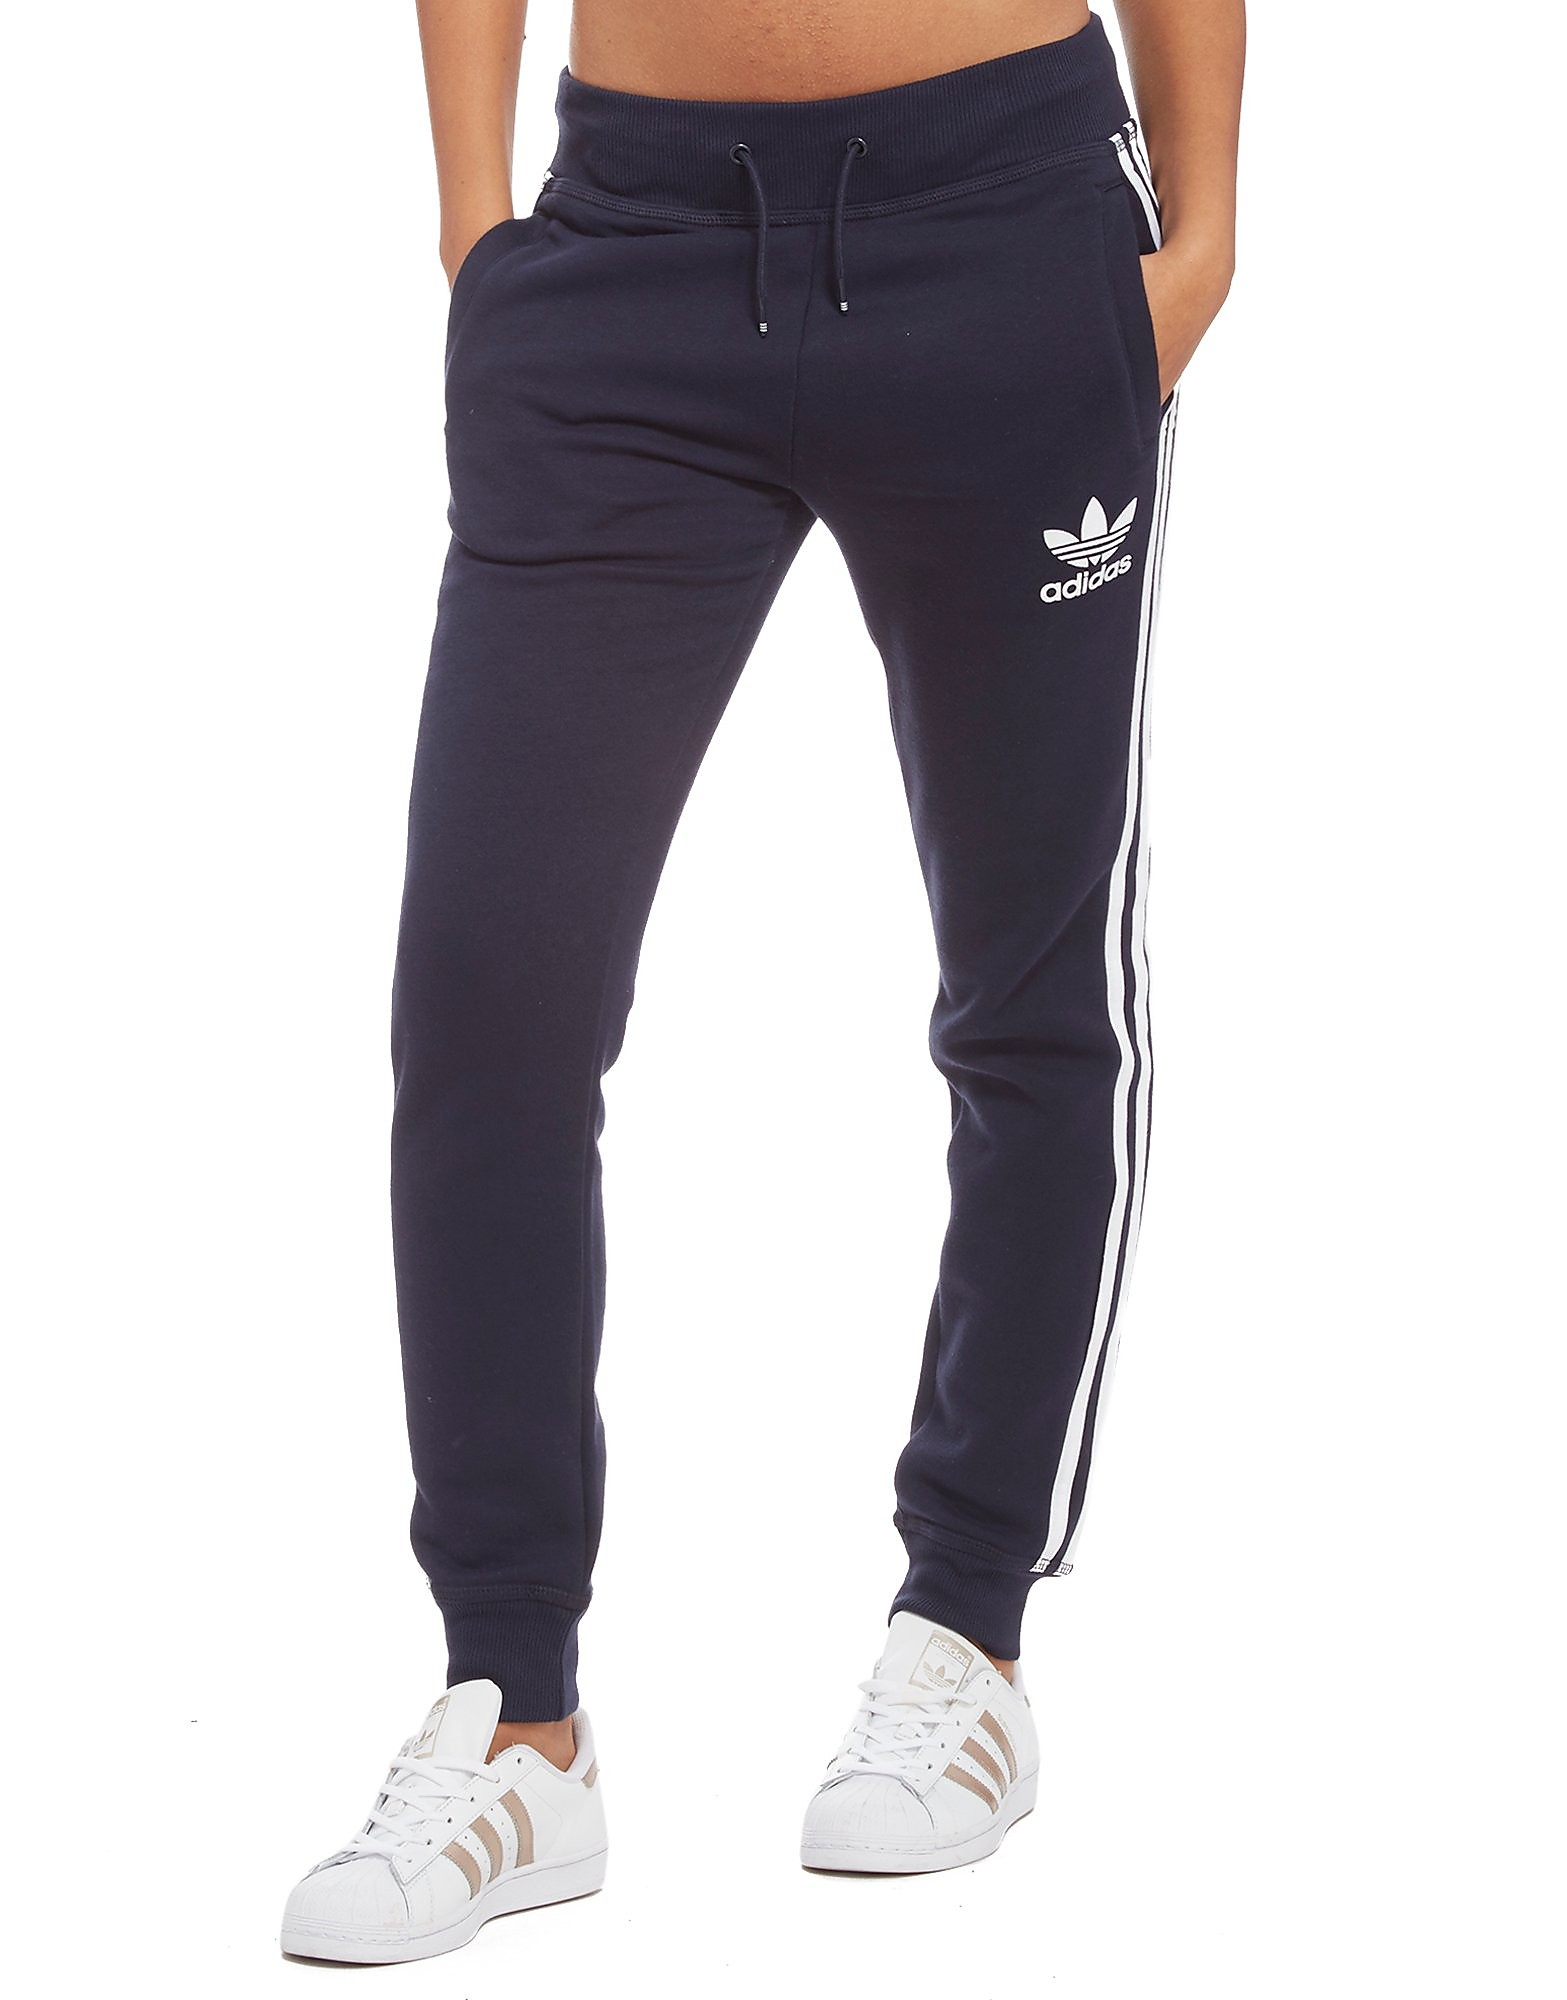 adidas Originals California Tracksuit Bottoms